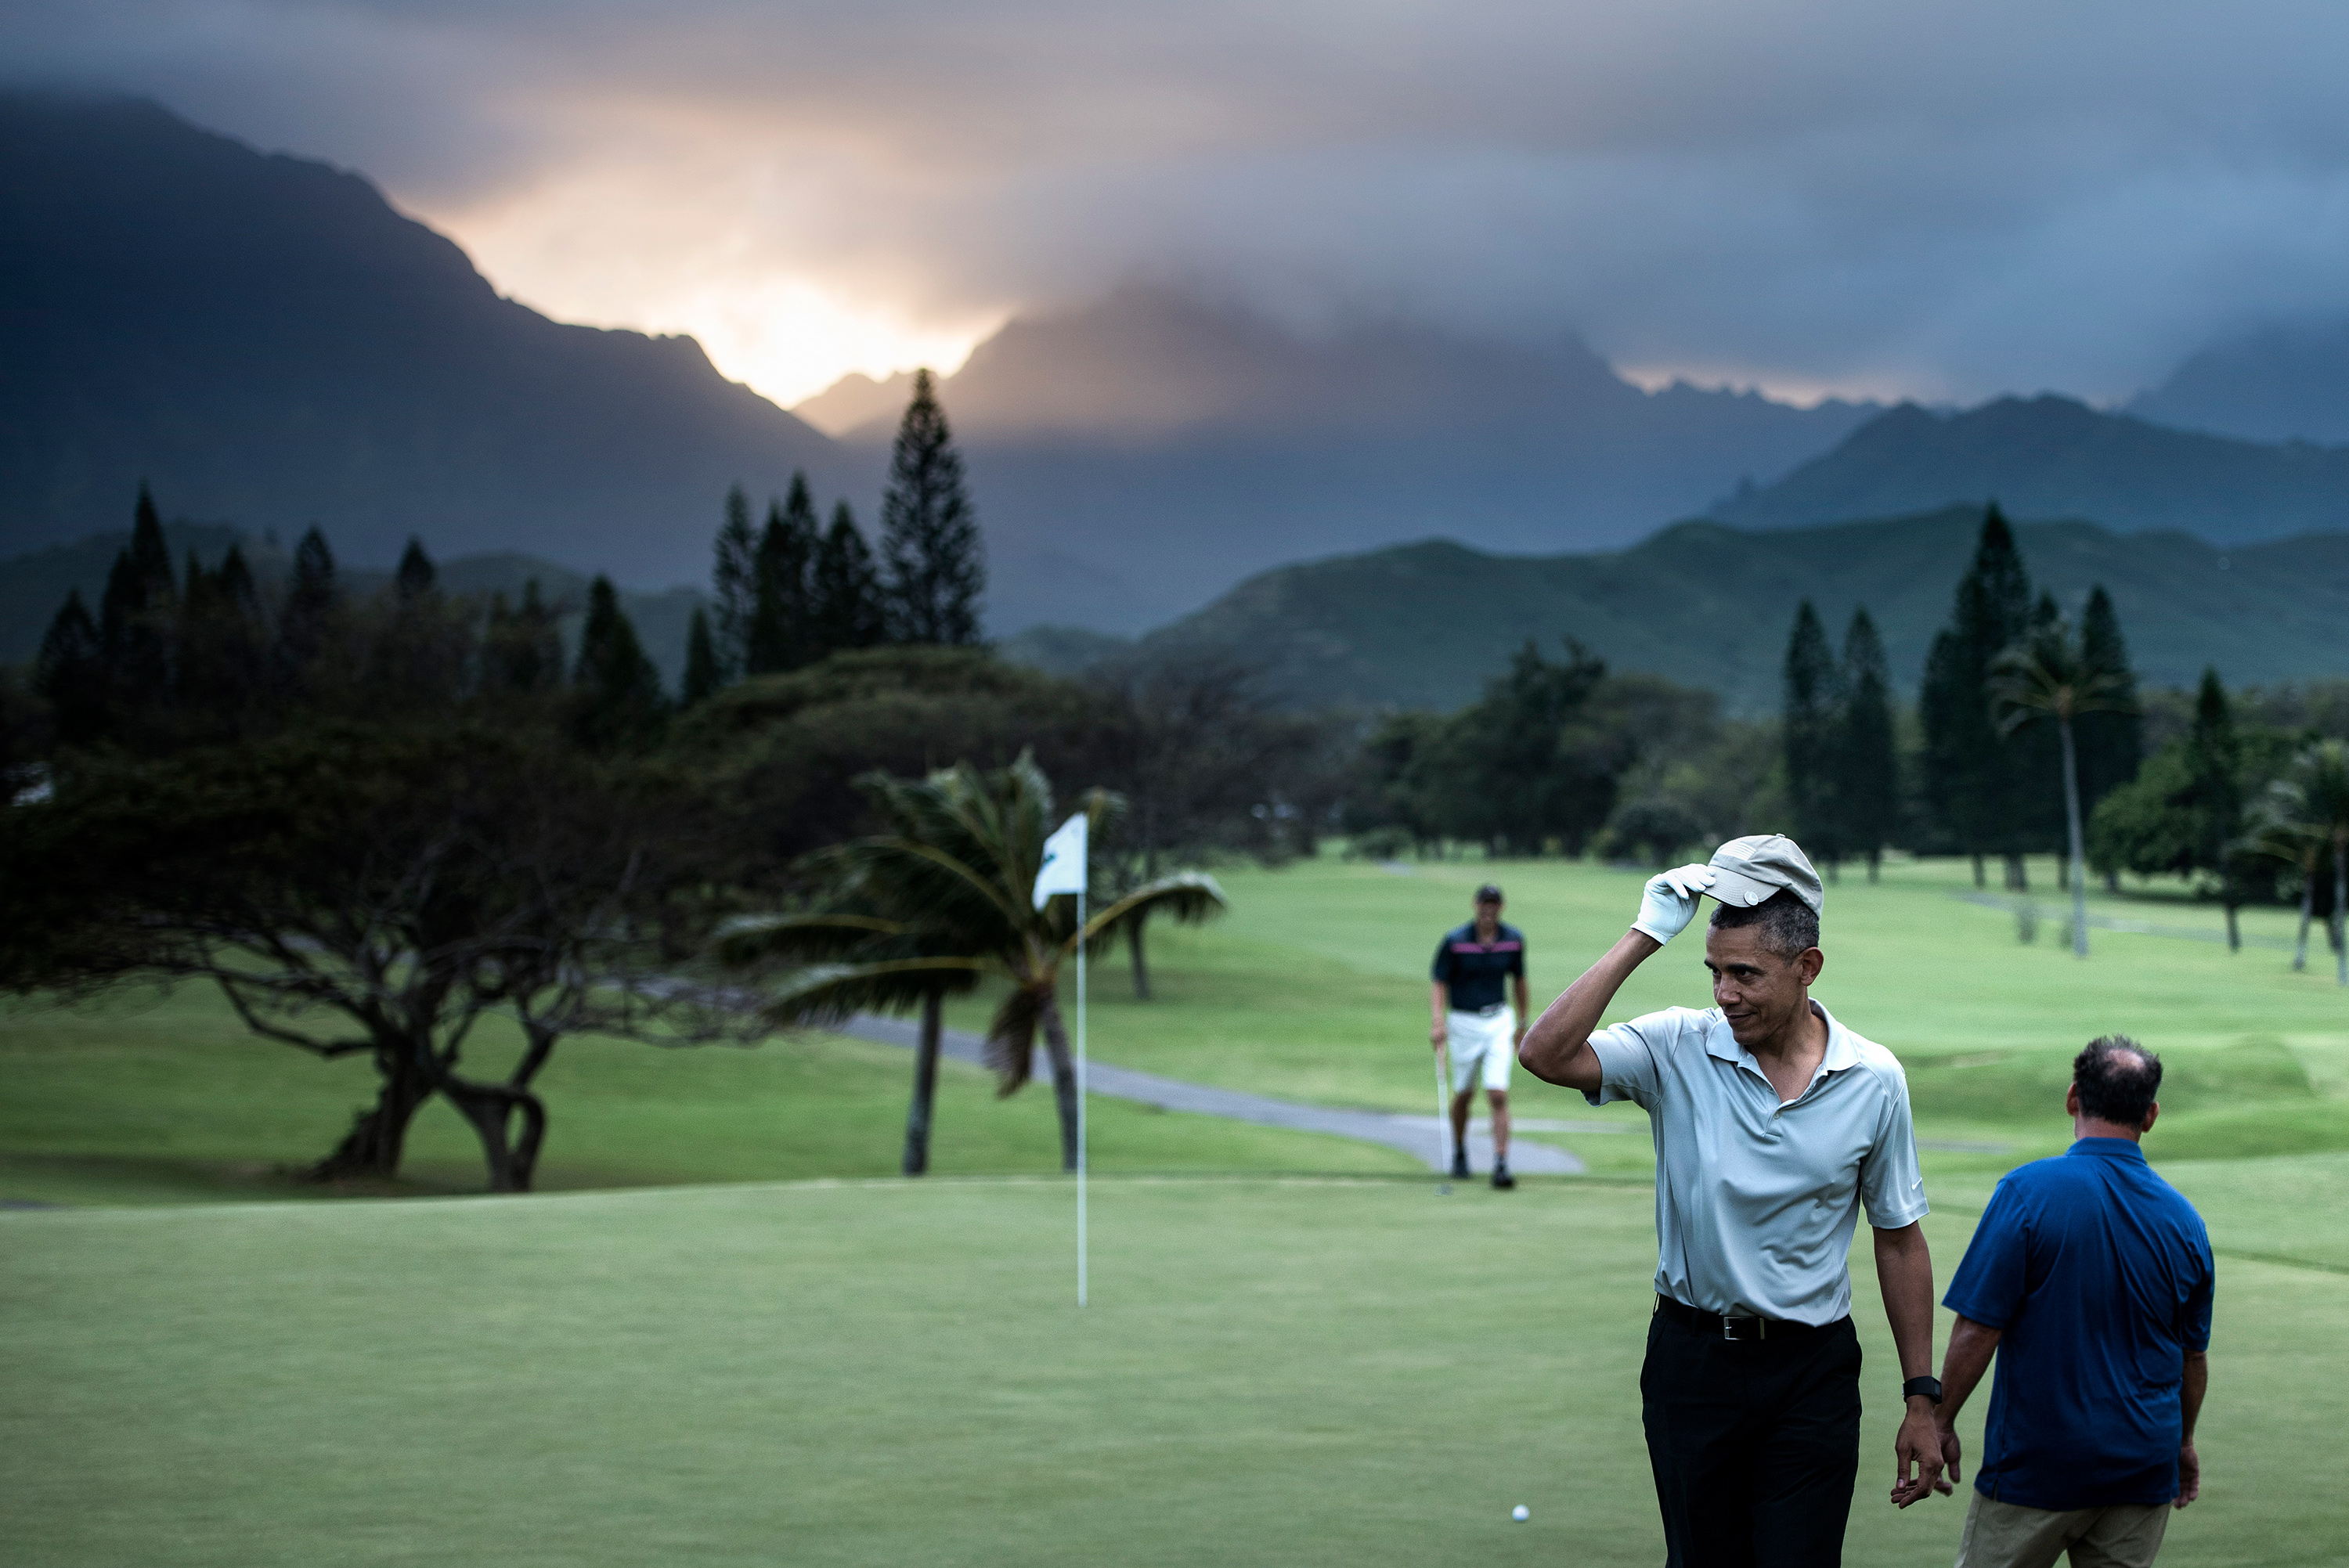 US President Barack Obama tips his hat to onlookers after chipping a ball in on the 18th green21 of the Mid-Pacific Country Club's golf course December 21, 2015 in Kailua, Hawaii. Obama and the First Family are in Hawaii for vacation.